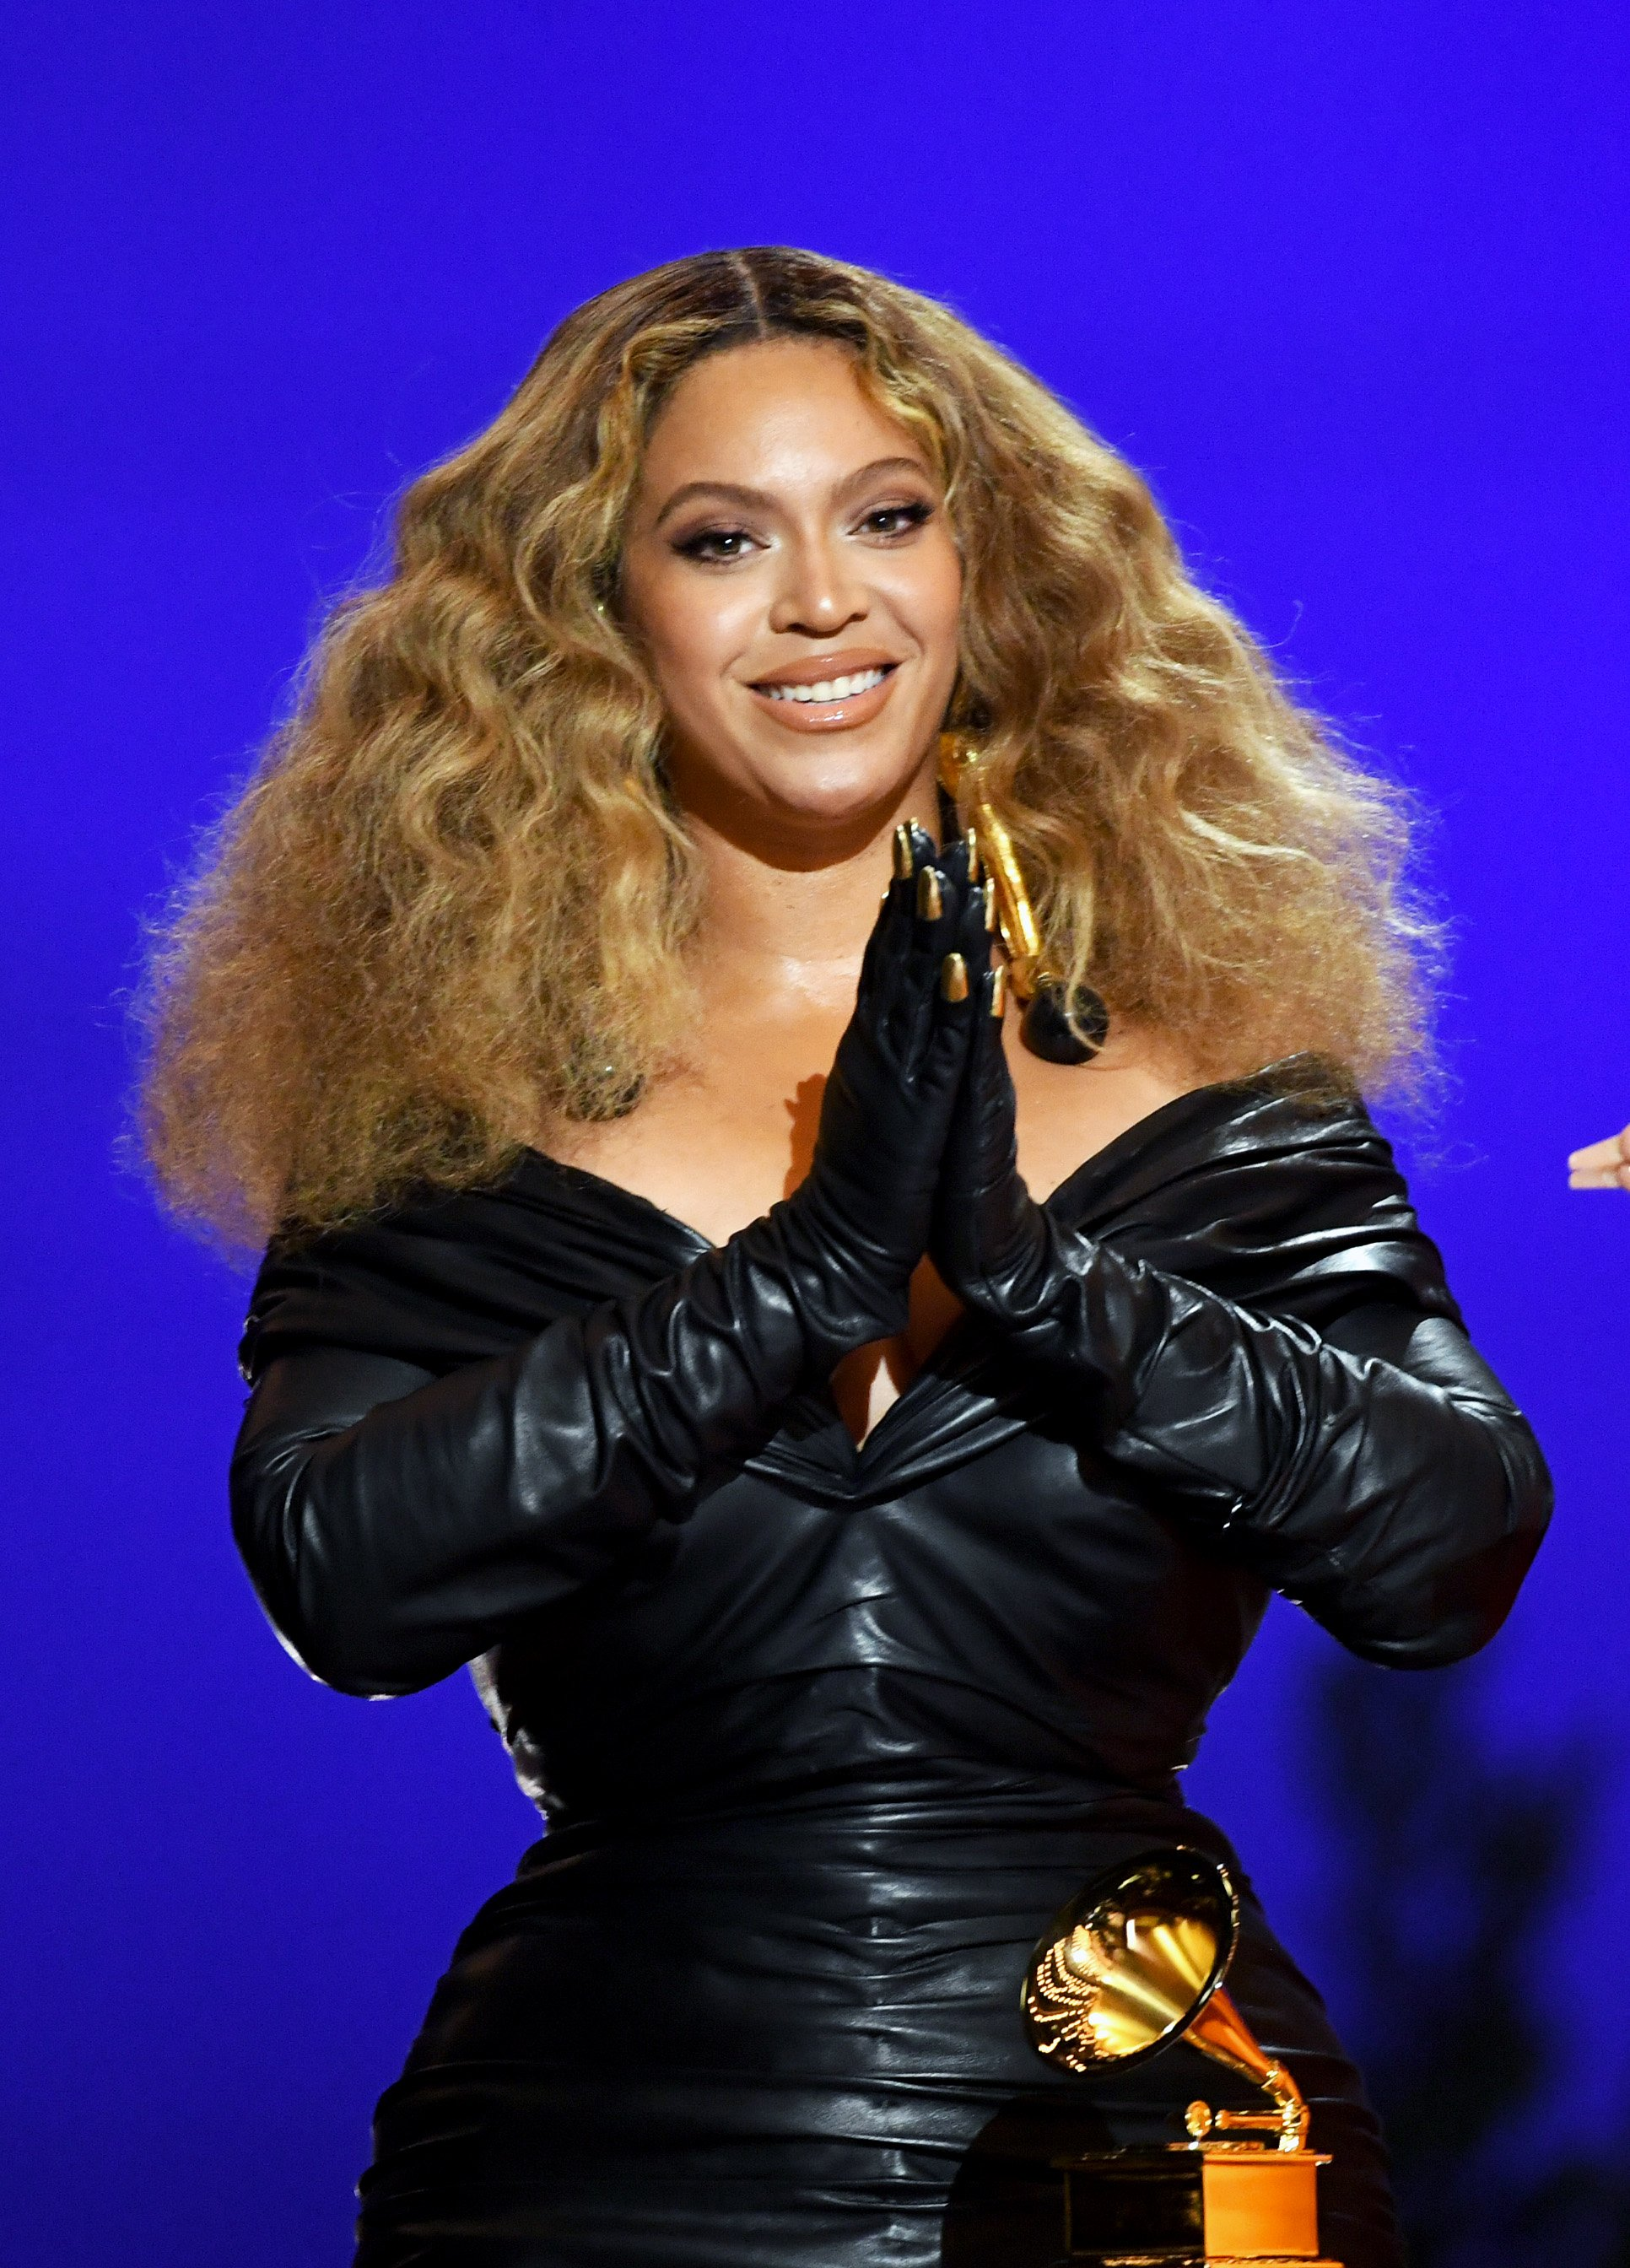 Beyoncé accepts an award at the 63rd Annual Grammy Awards on March 14, 2021 in Los Angeles, California. | Source: Getty Images